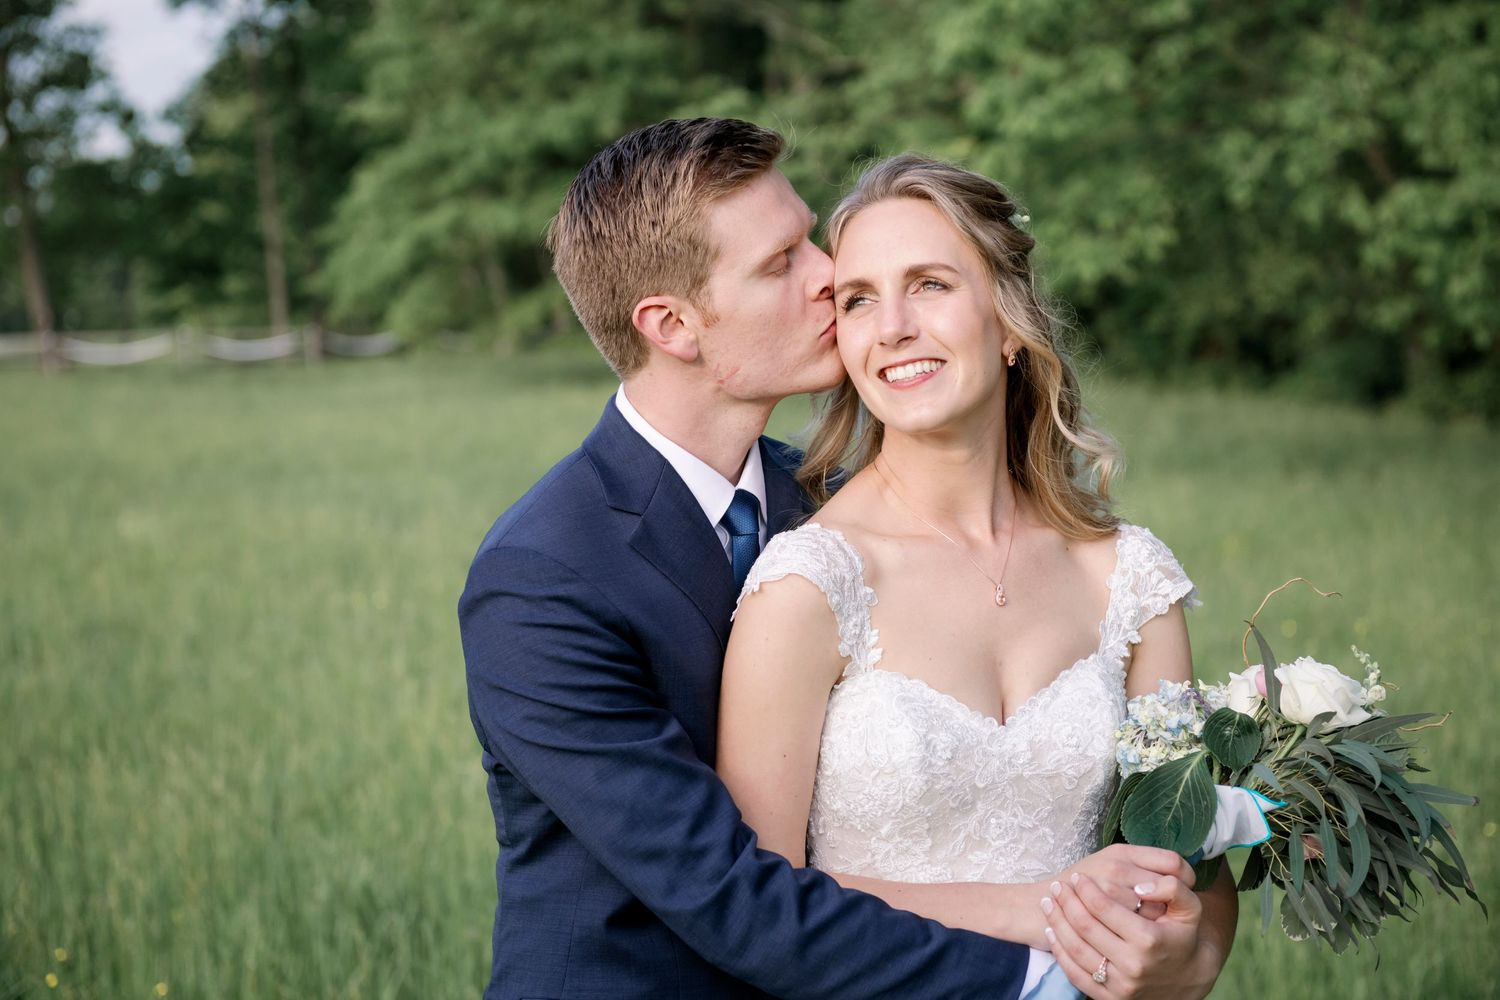 groom kisses bride on cheek after backyard farm wedding